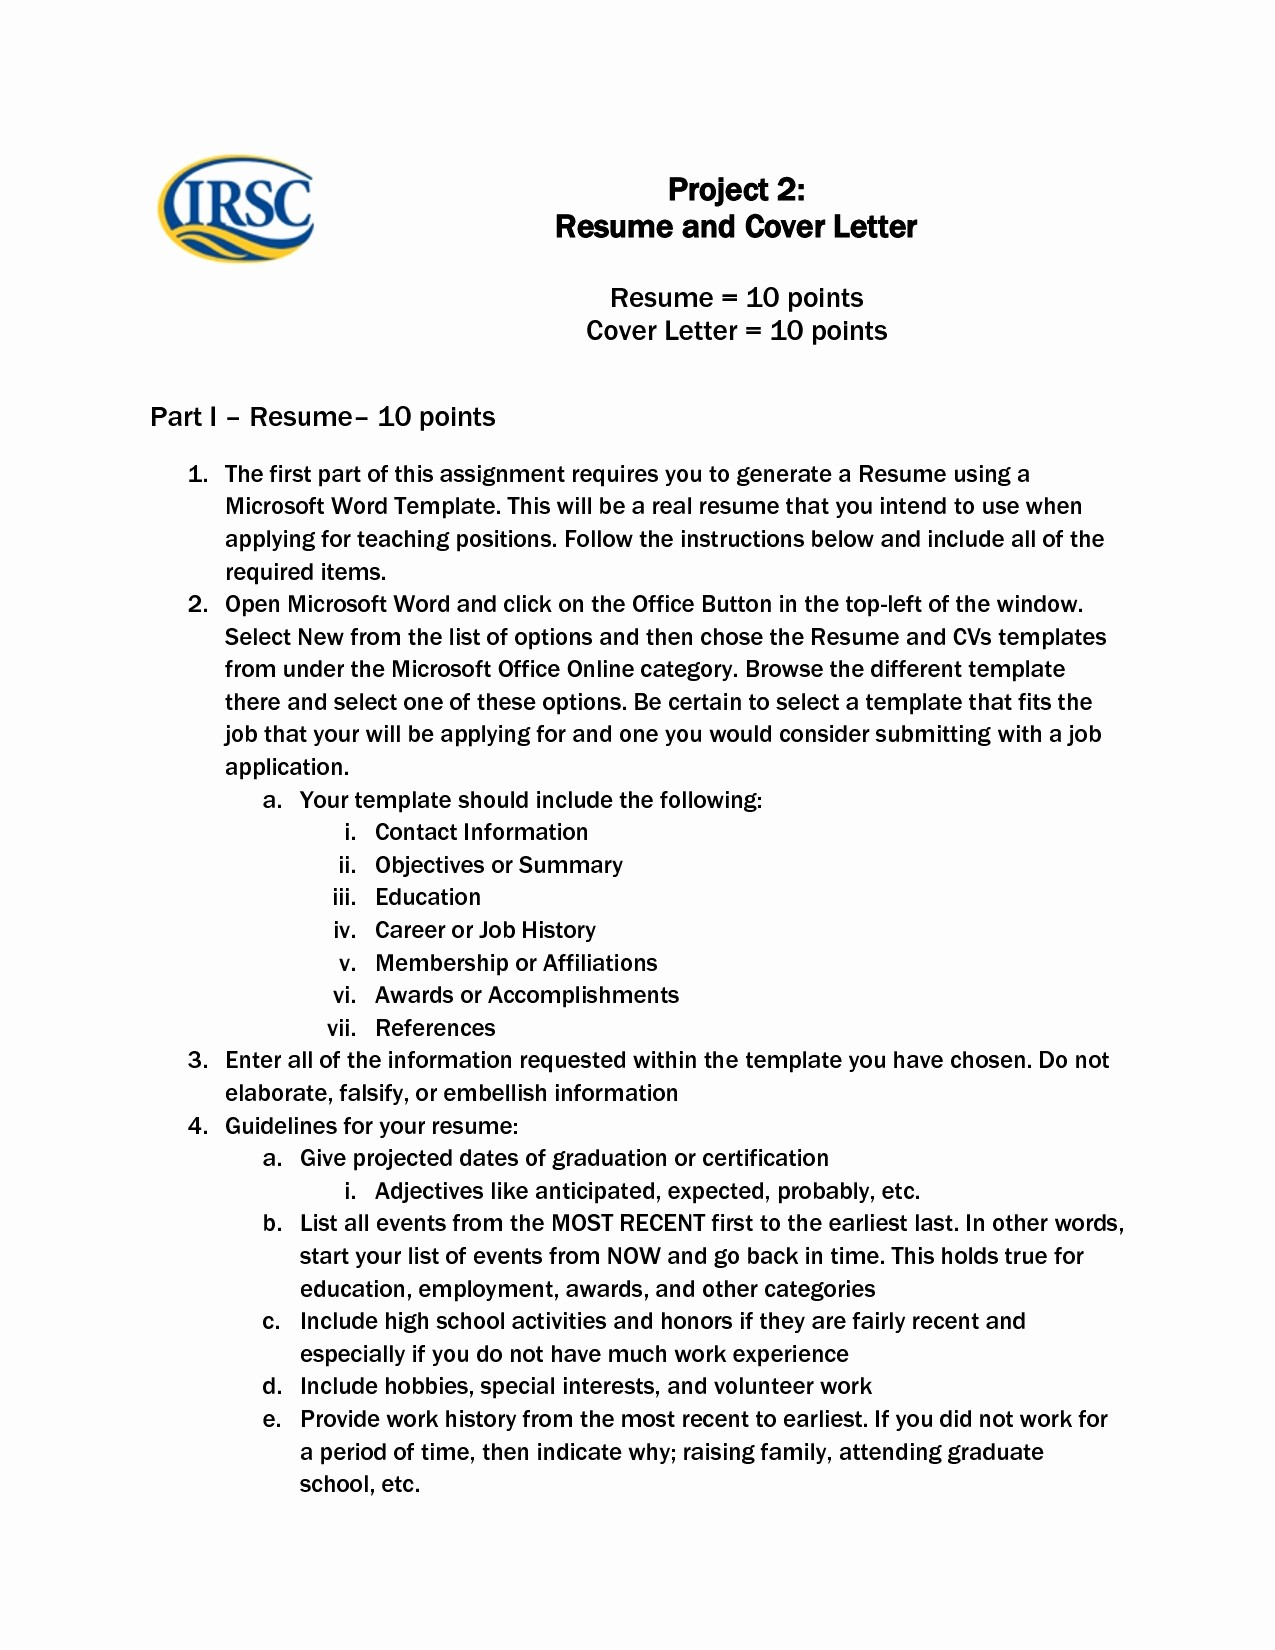 Cover Letter Of A Resume Inspirational Resume Cover Letter Template 2017